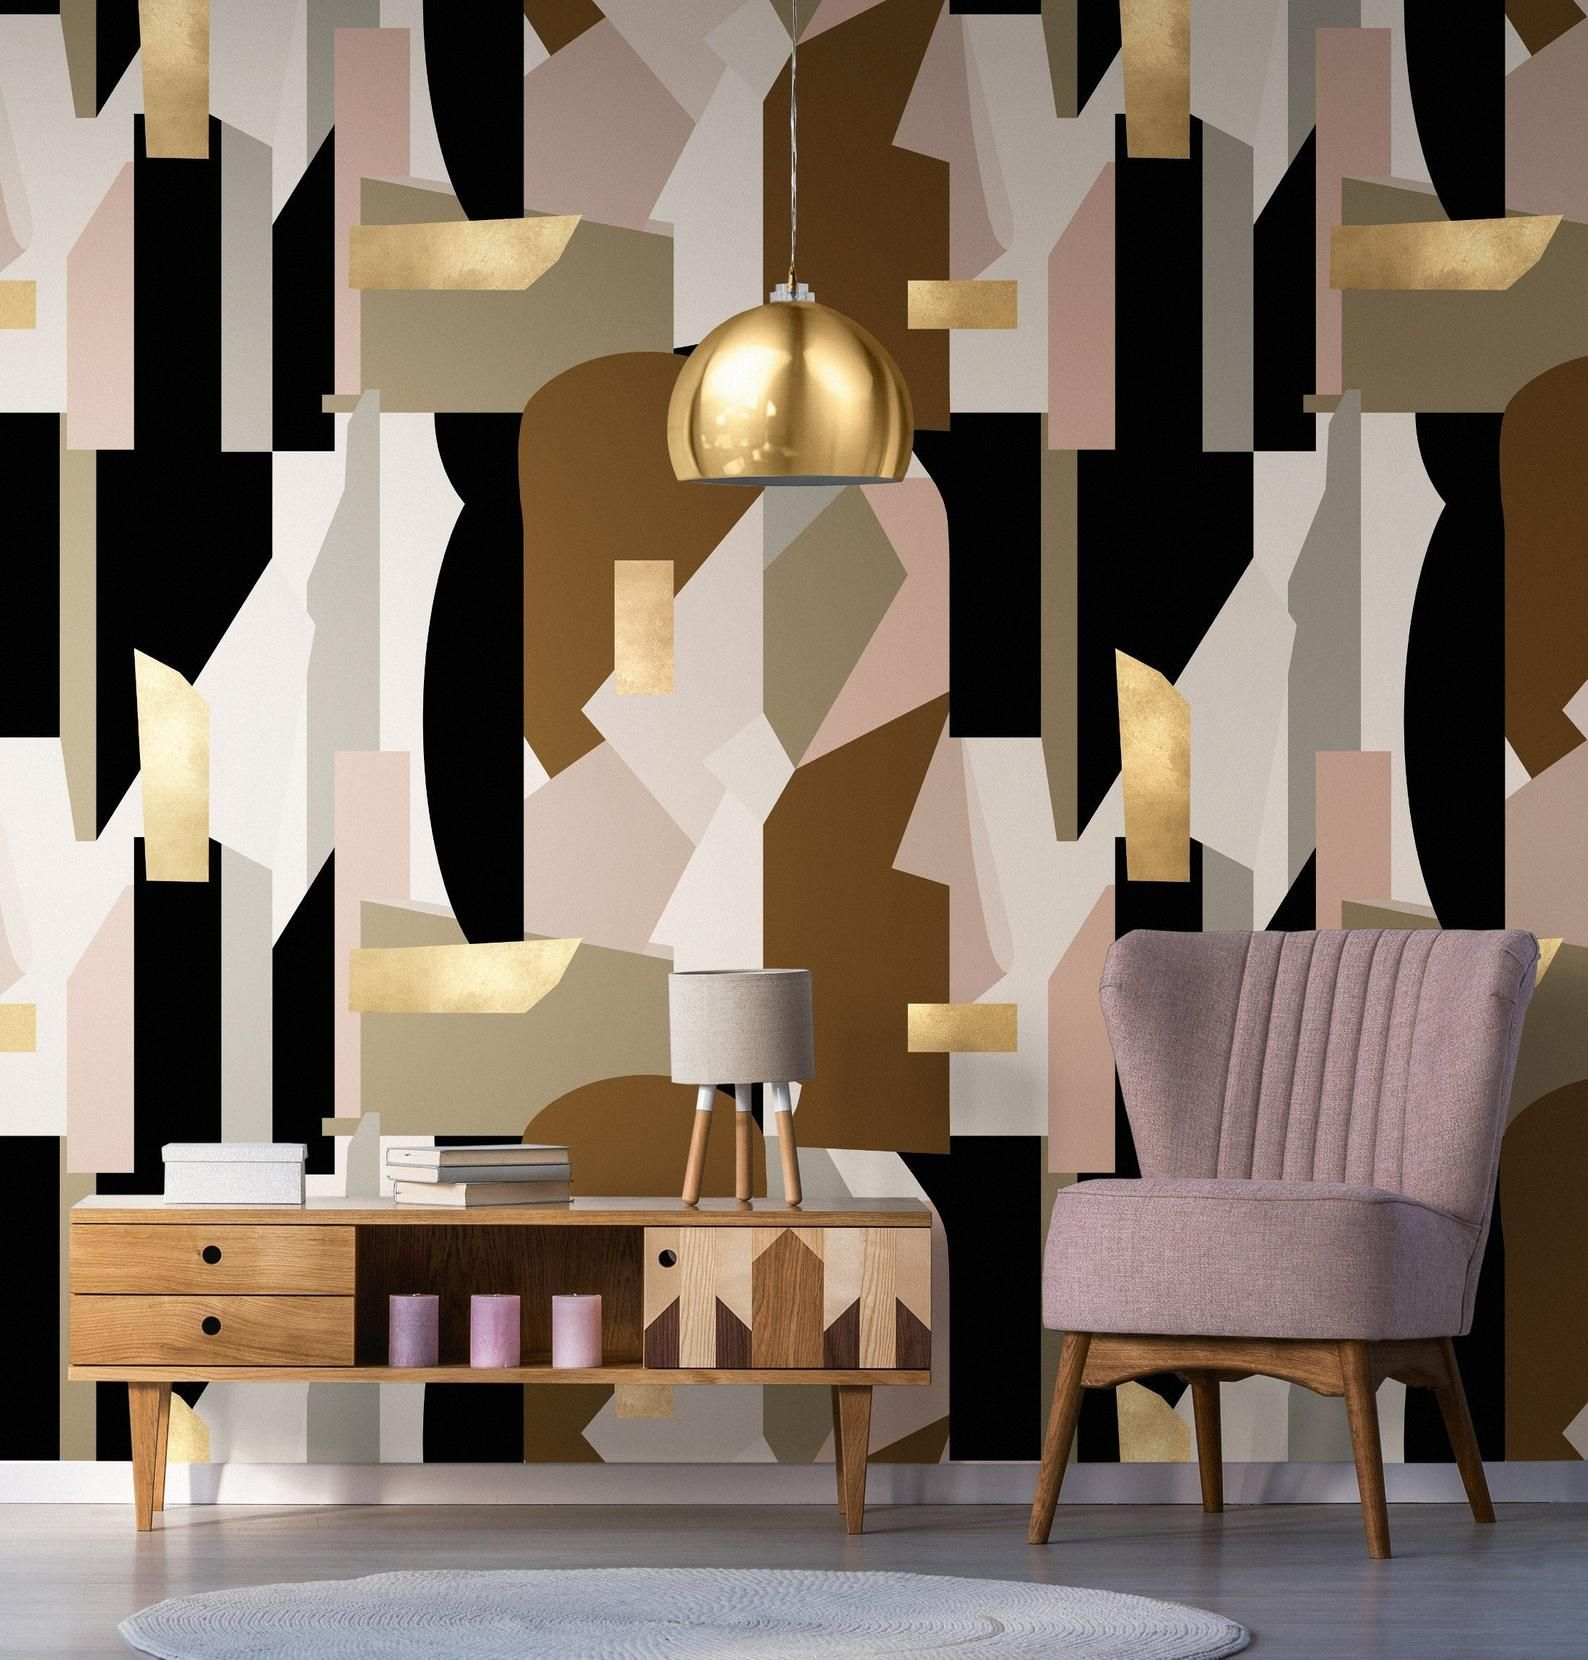 Large scale abstract geometric wallpaper – Contemporary designer wallpaper / wallcovering – feature wall – statement abstraction wallpaper